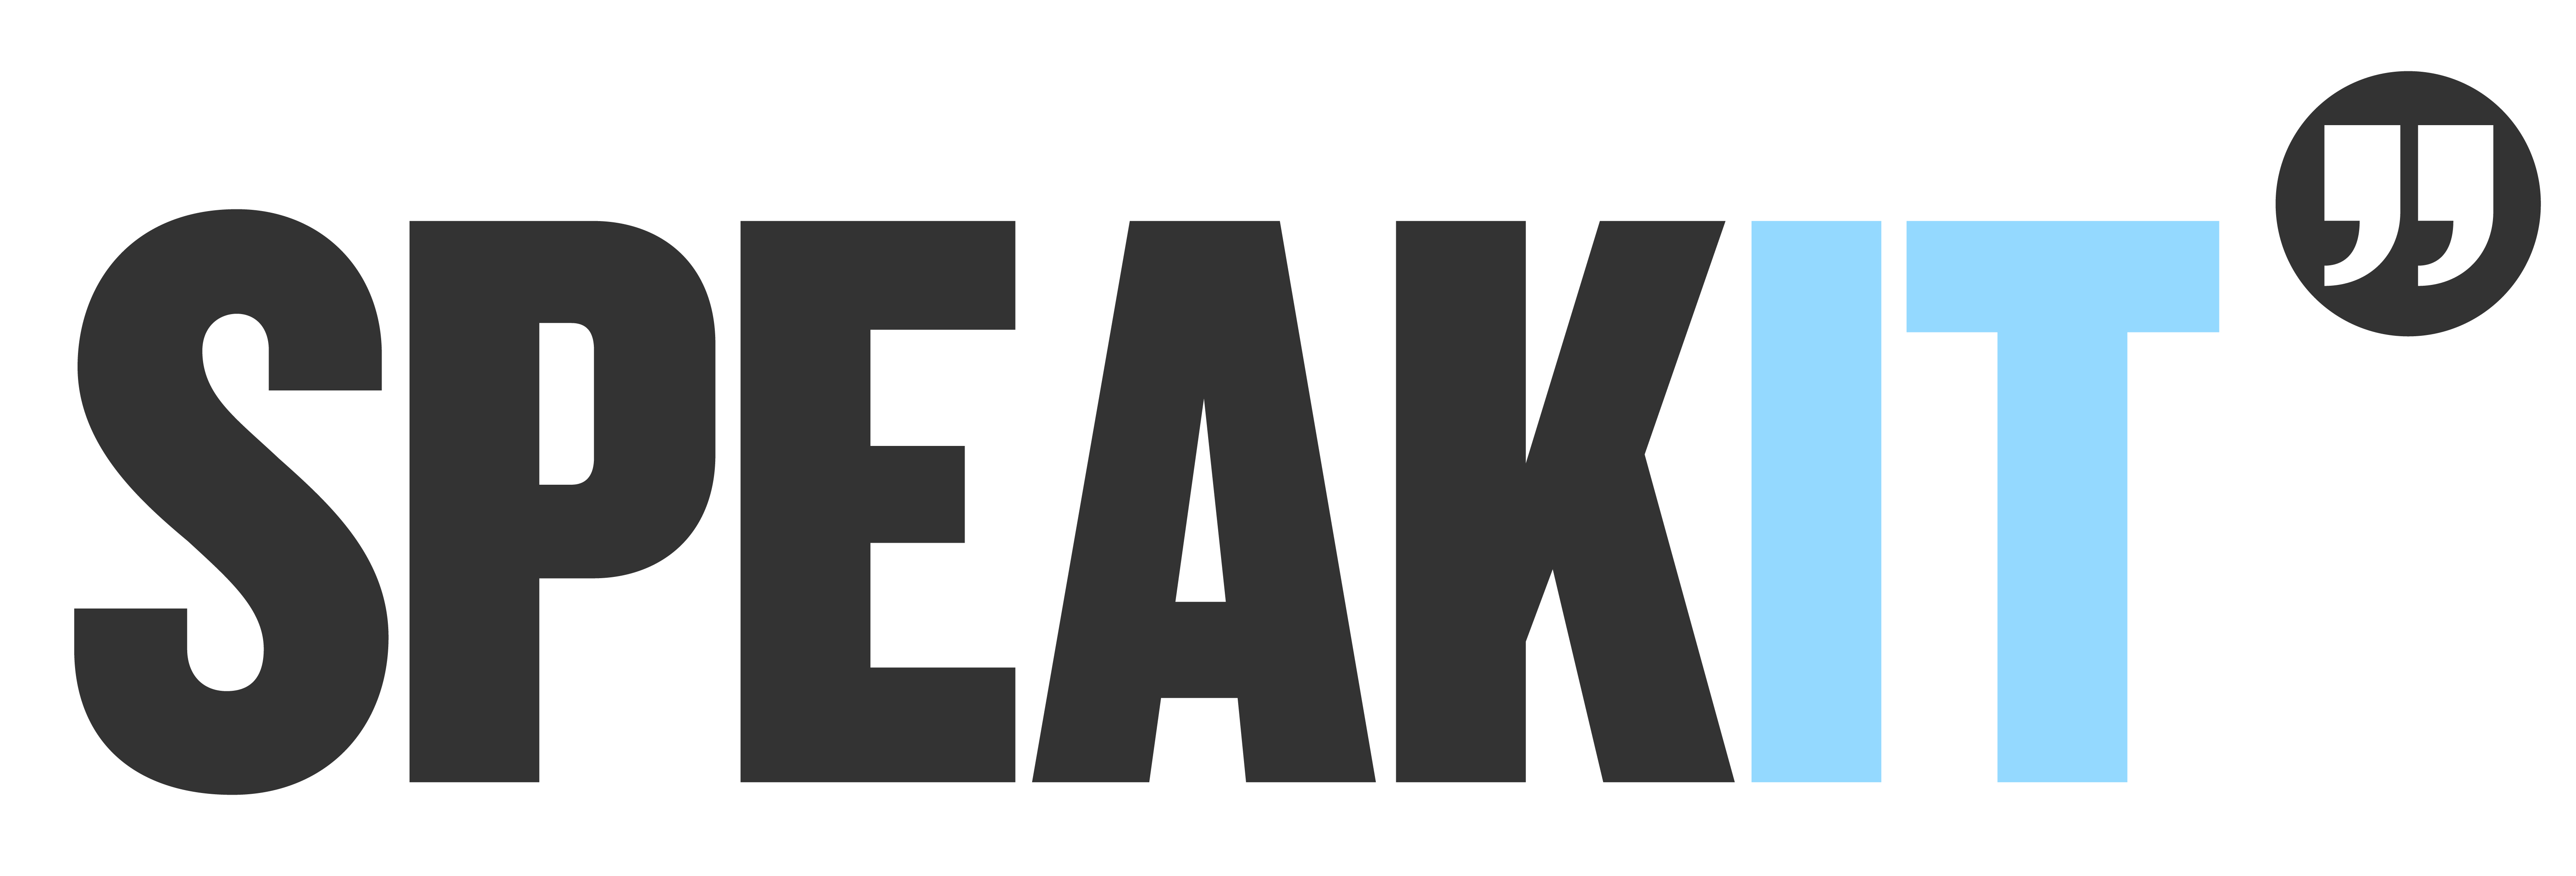 speakit logo